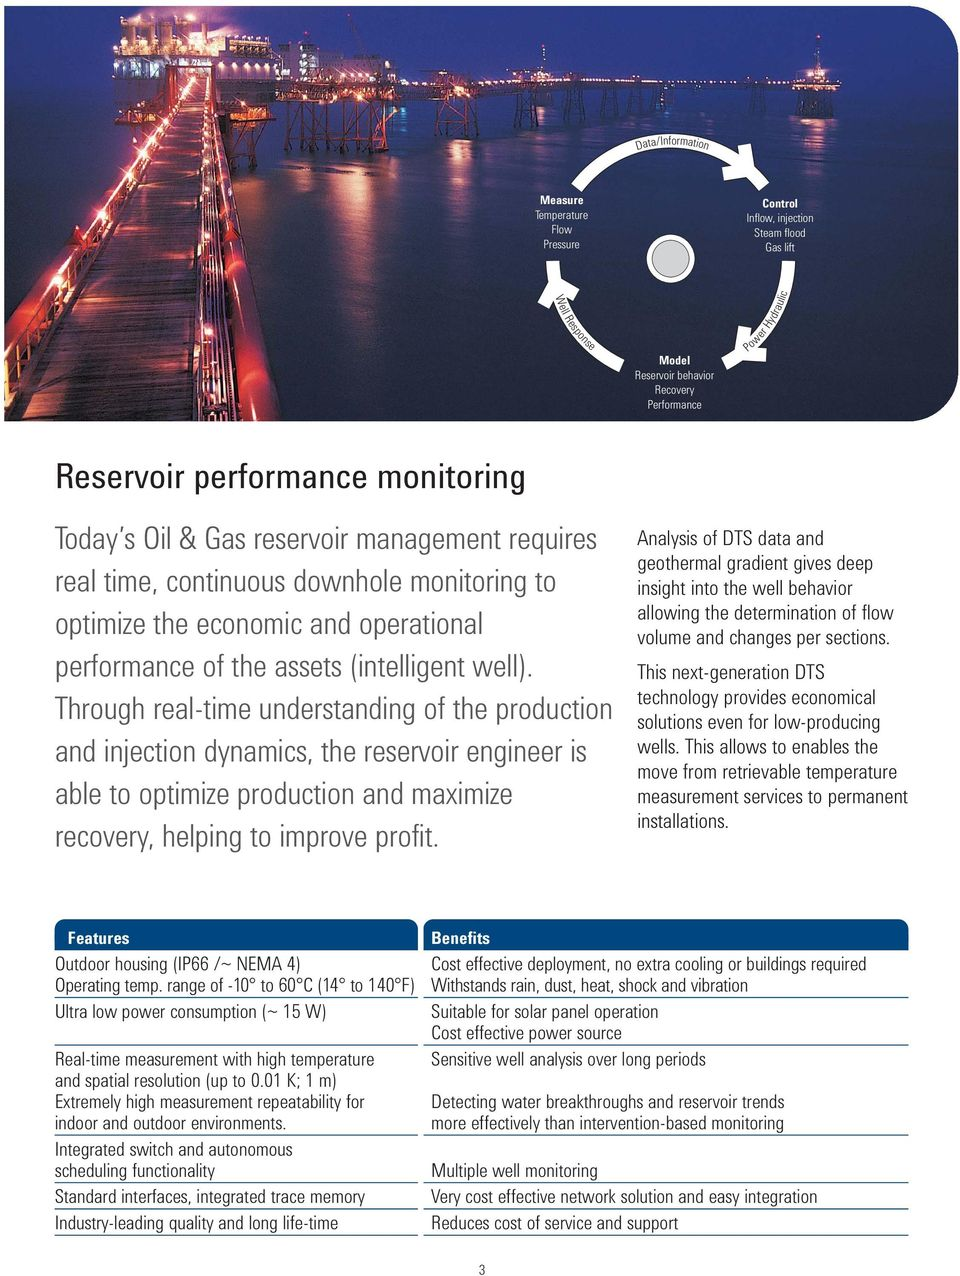 Through real-time understanding of the production and injection dynamics, the reservoir engineer is able to optimize production and maximize recovery, helping to improve profit.